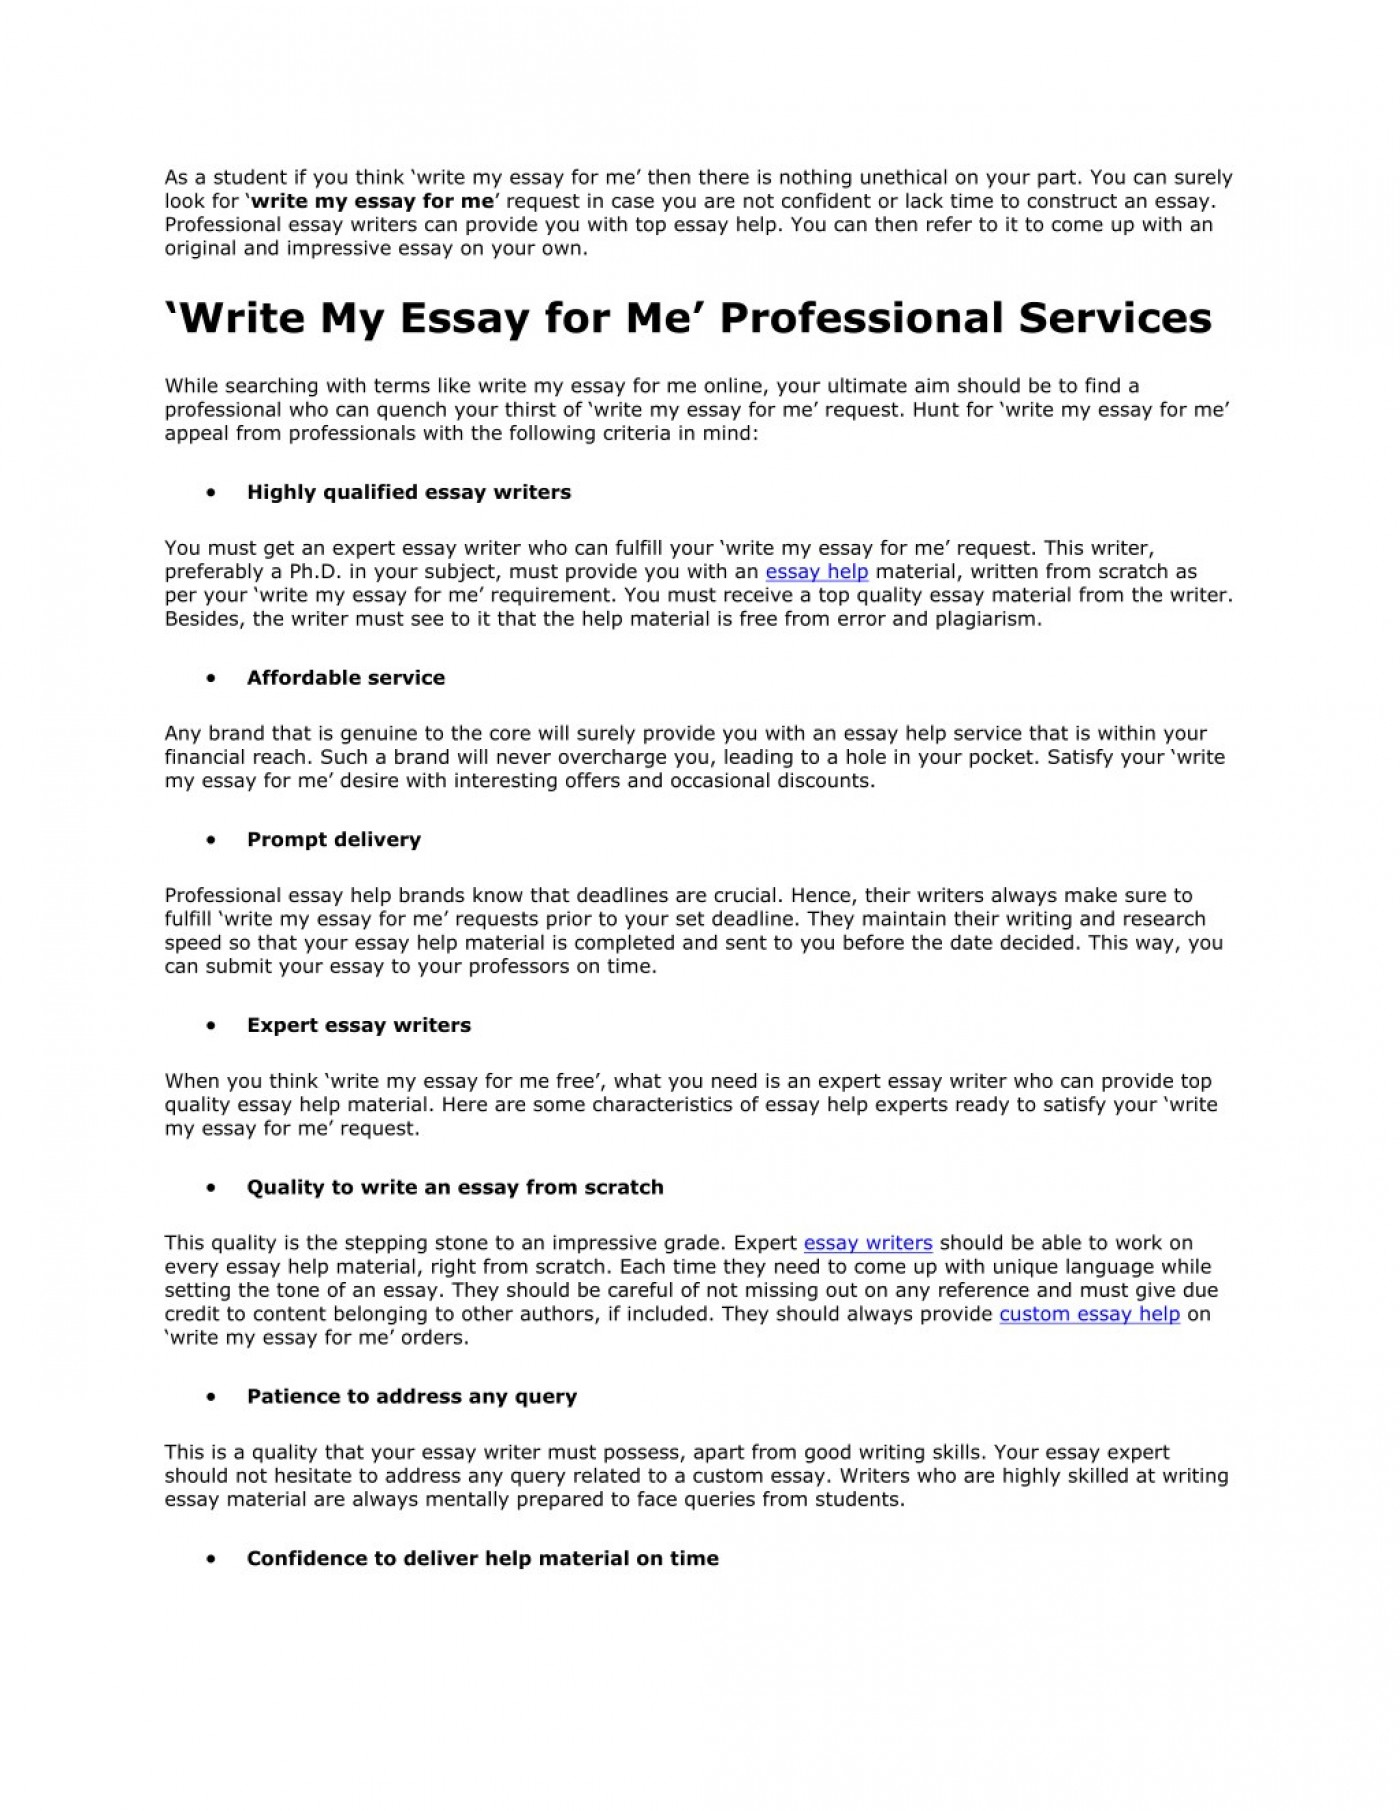 006 Essay Example Write For Me As Student If You Think My Amazing Custom Cheap Free 1400